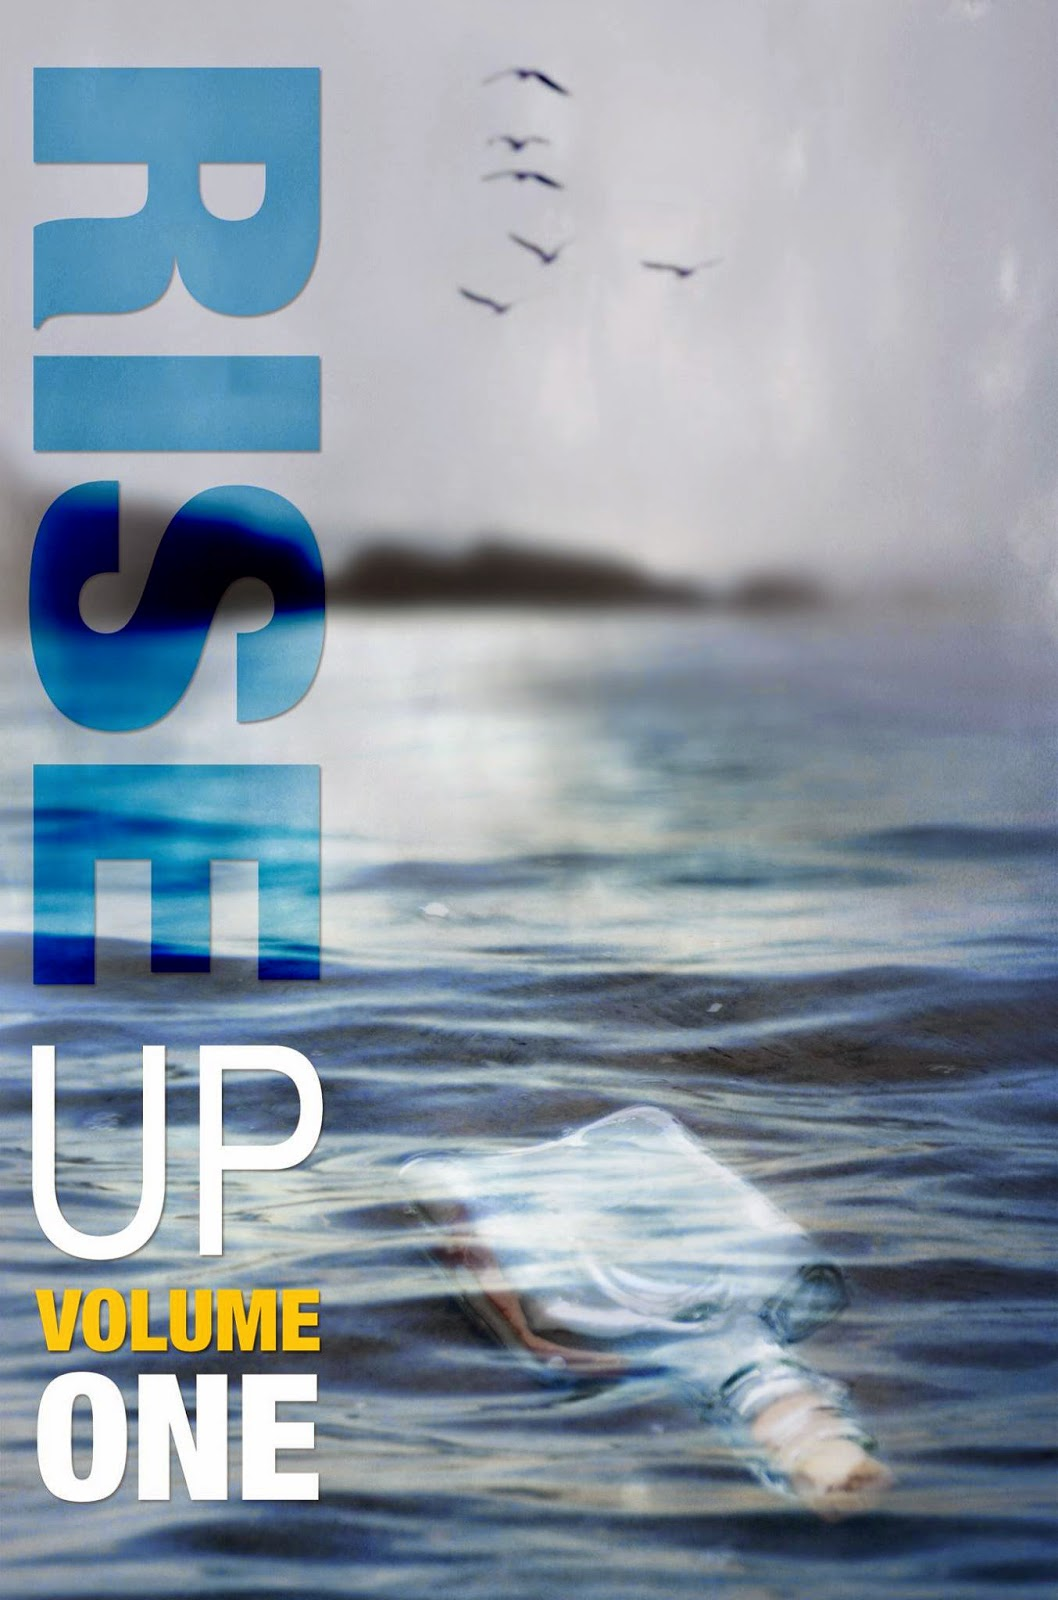 http://www.amazon.com/Rise-Up-One-Authors-Collection-ebook/dp/B00LR1ANAS/ref=sr_1_1?ie=UTF8&qid=1405258361&sr=8-1&keywords=rise+up+volume+1